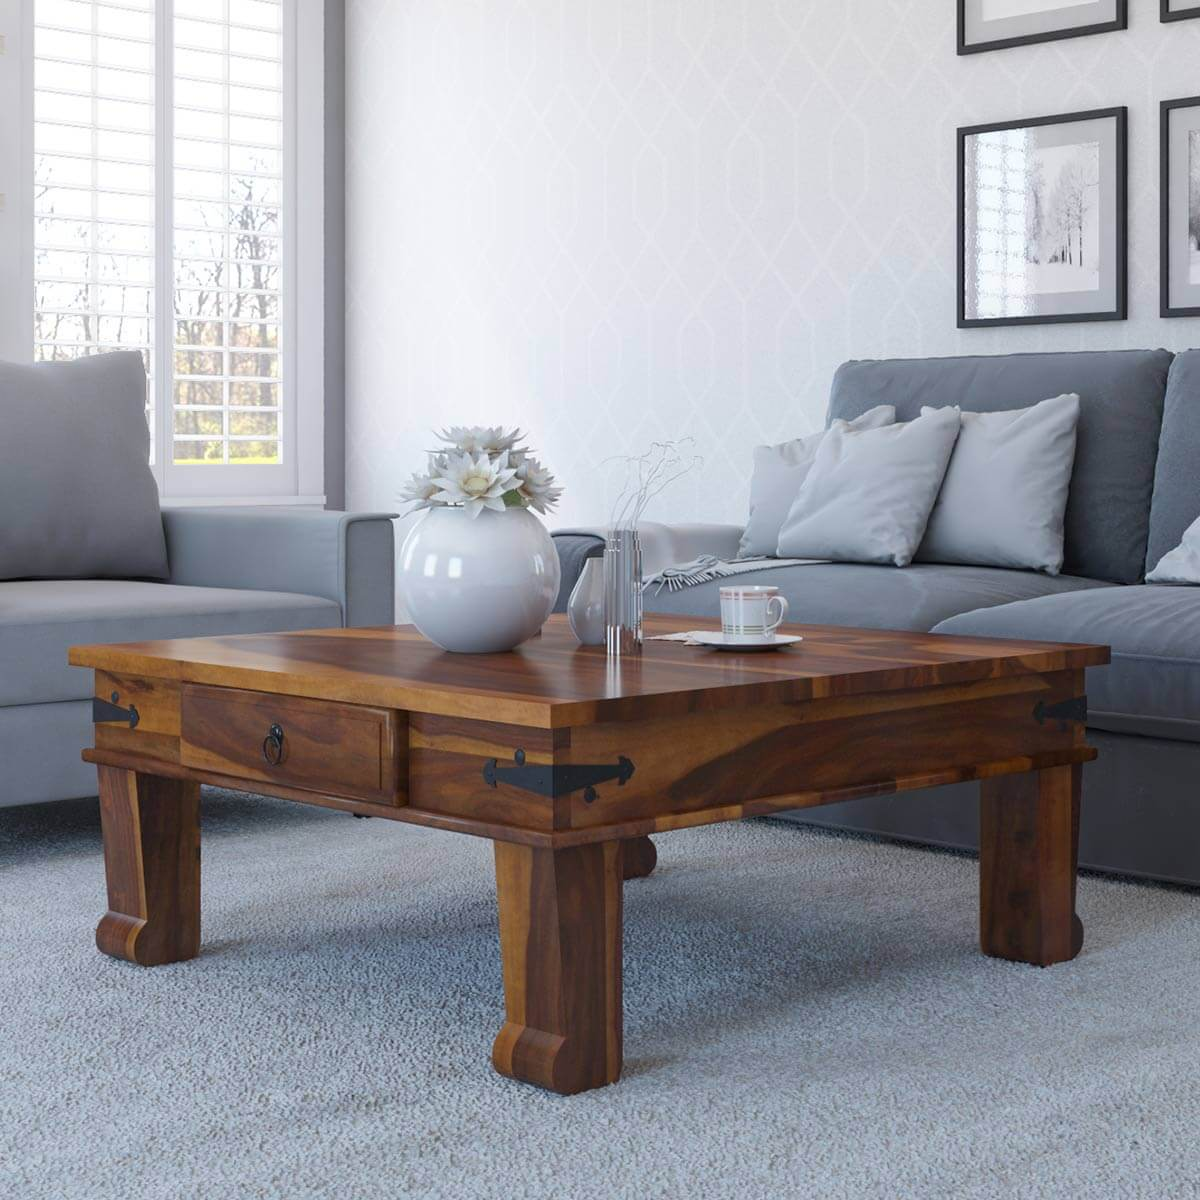 Square Coffee Table: Solid Wood Sofa Accent Cocktail Rustic Square Coffee Table